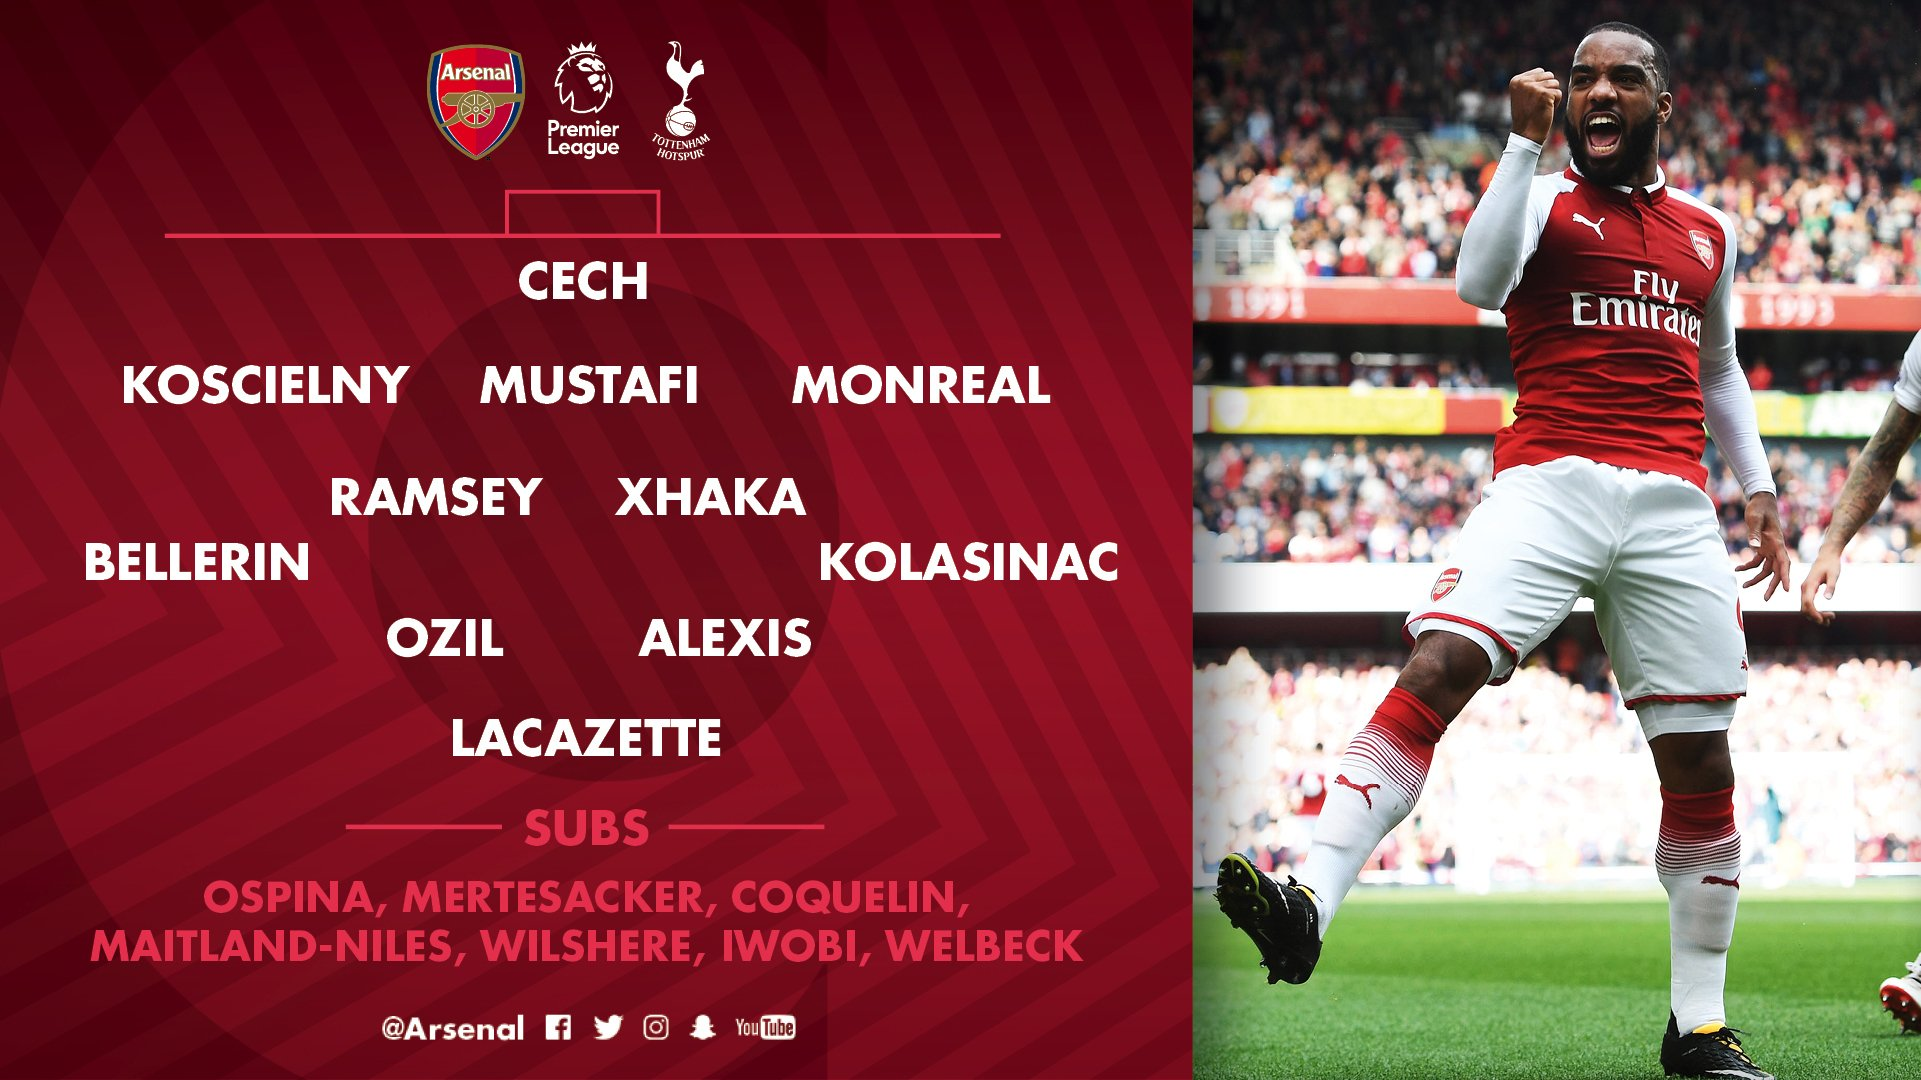 Here it is - our starting lineup for the first north London derby of the season ��  #AFCvTHFC https://t.co/rEnGhDvMVj